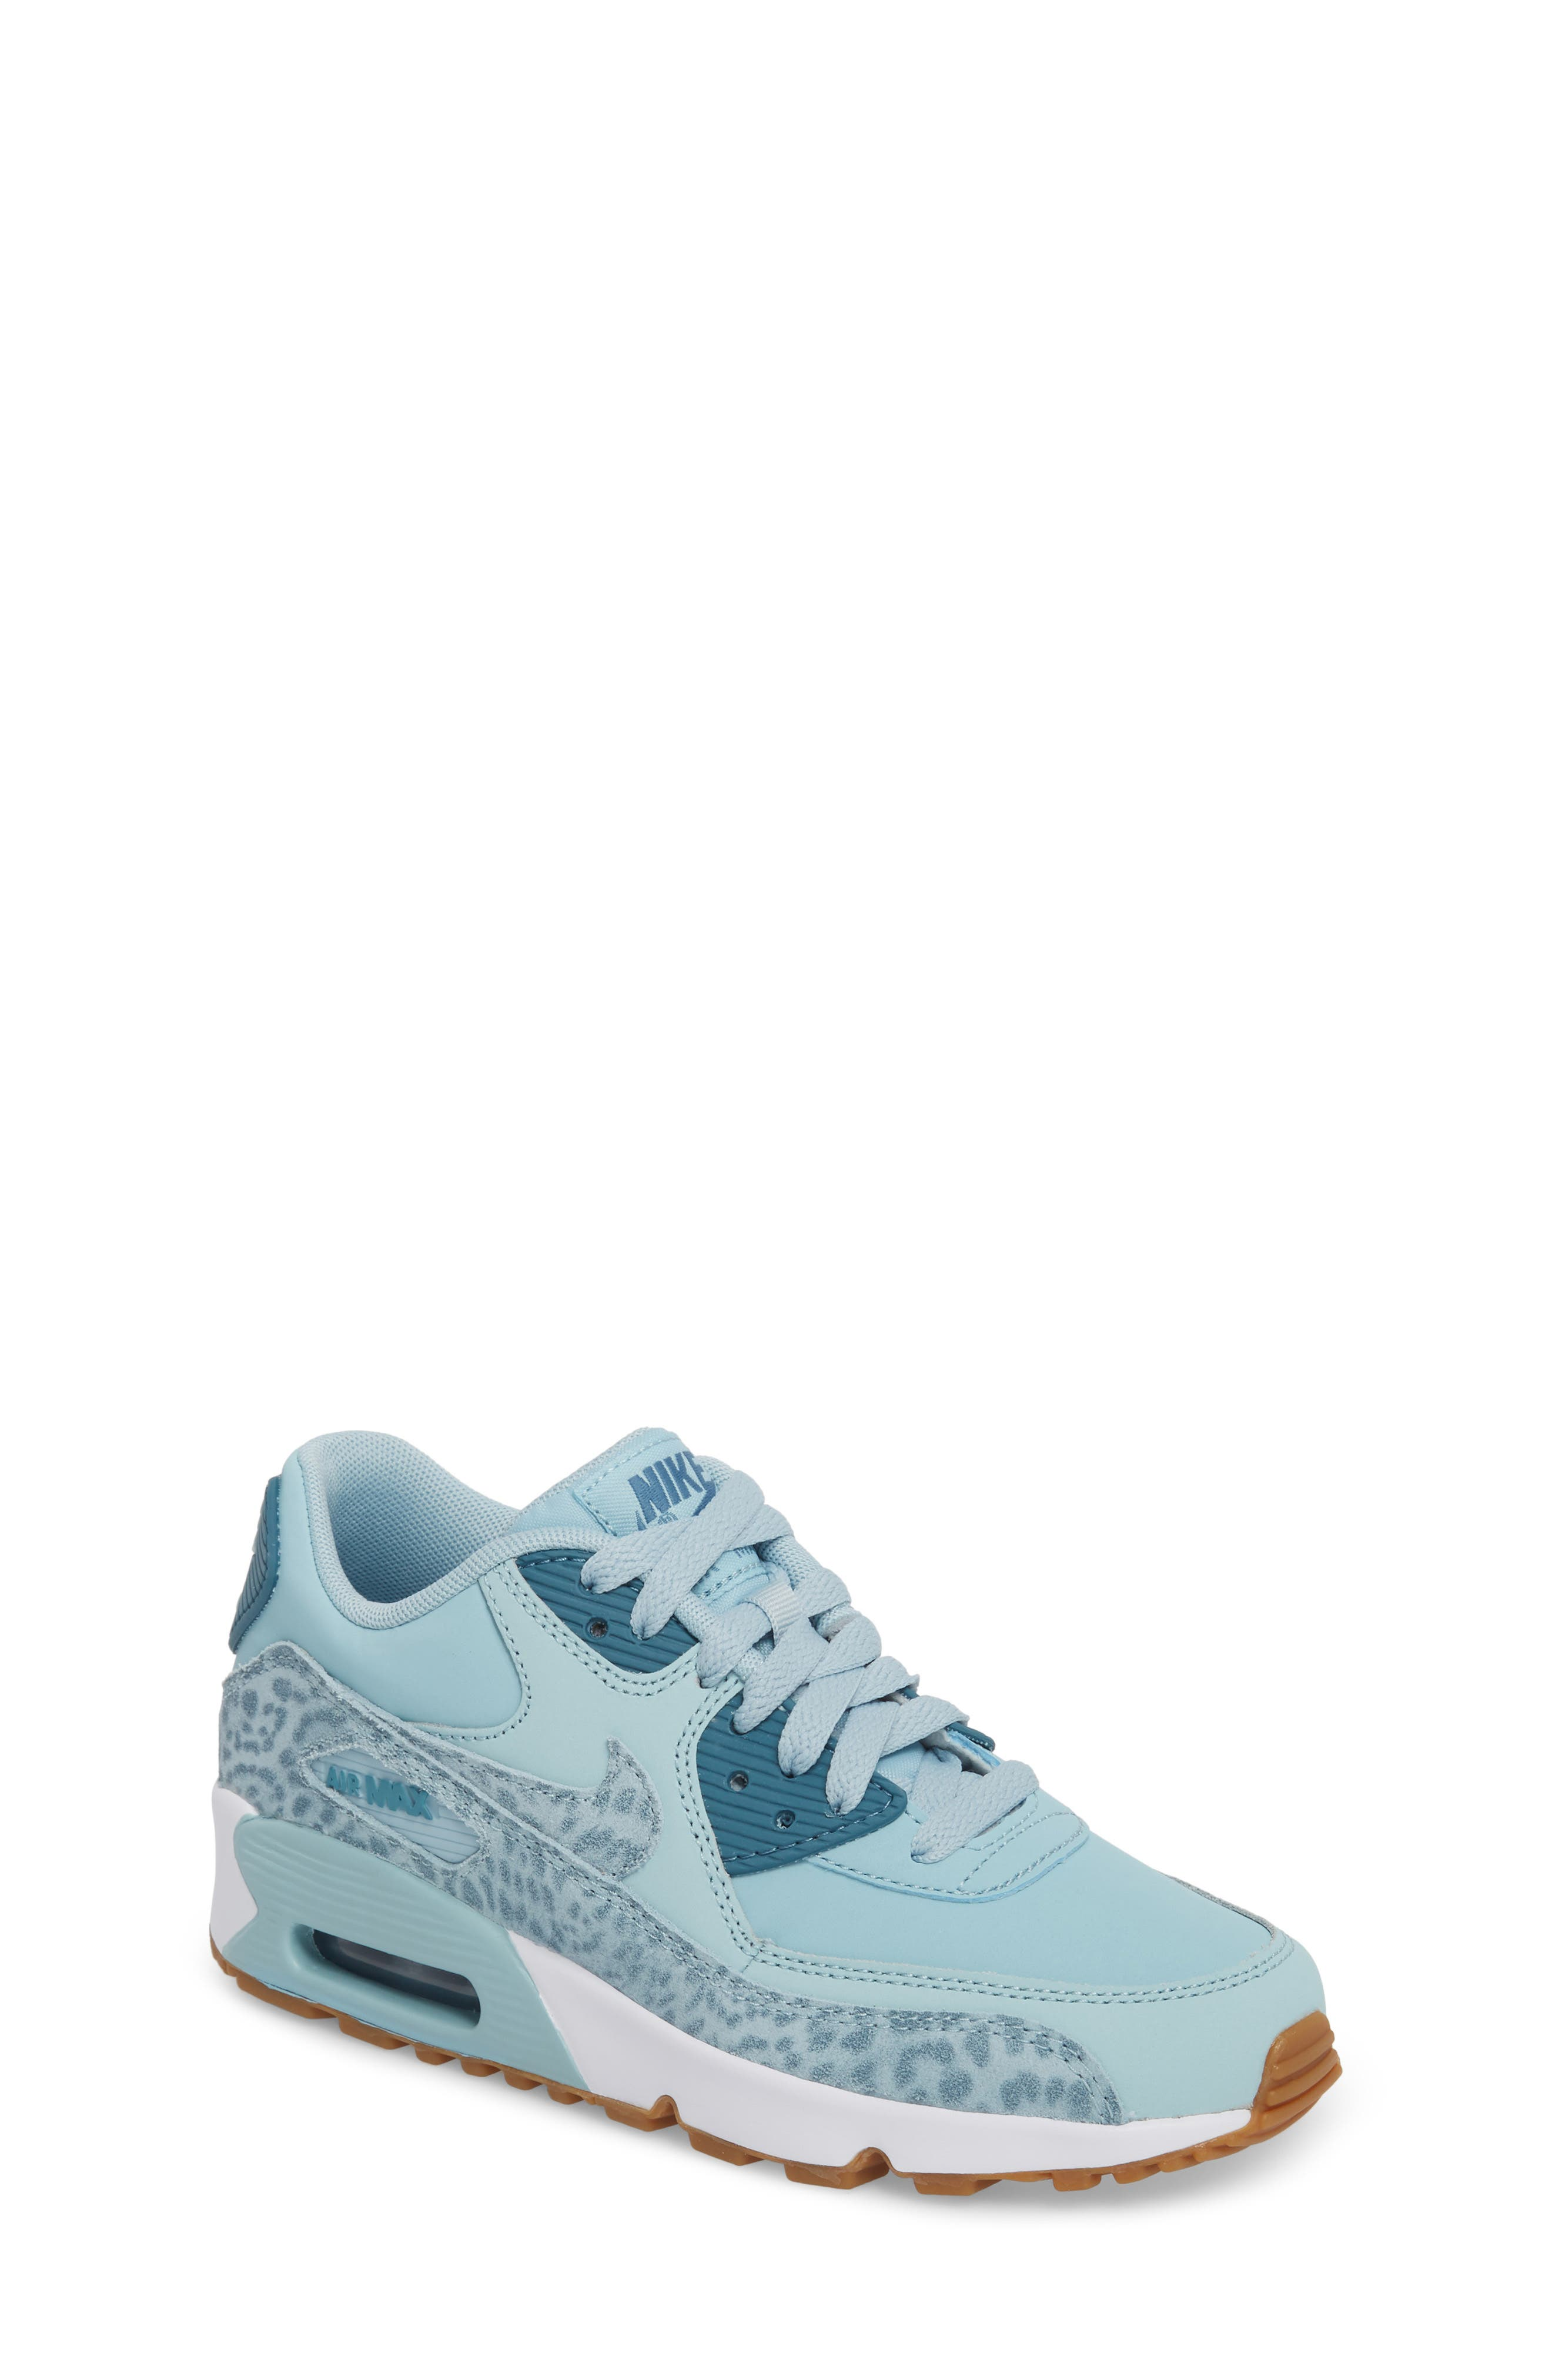 new product ff836 e6110 White Nike hitops with aqua accent size 7